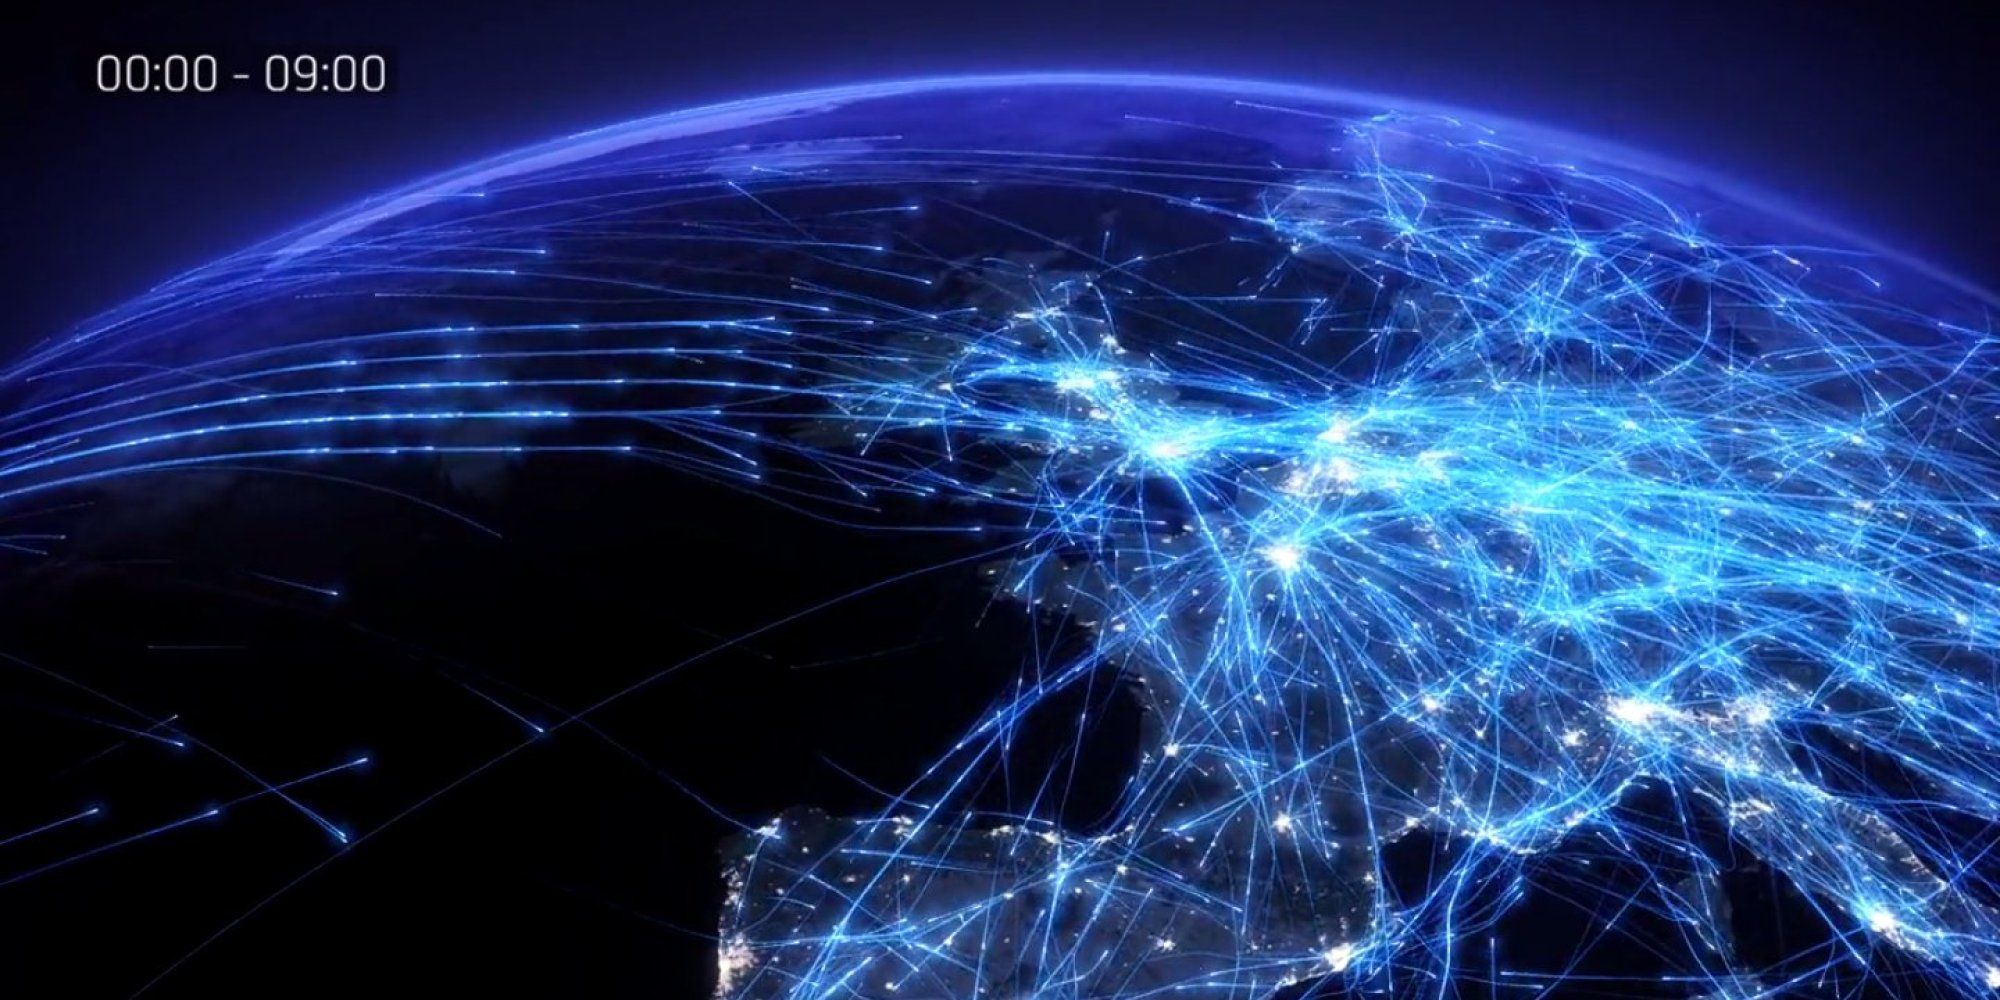 o-EUROPEAN-AIR-TRAFFIC-TIME-LAPSE-facebook